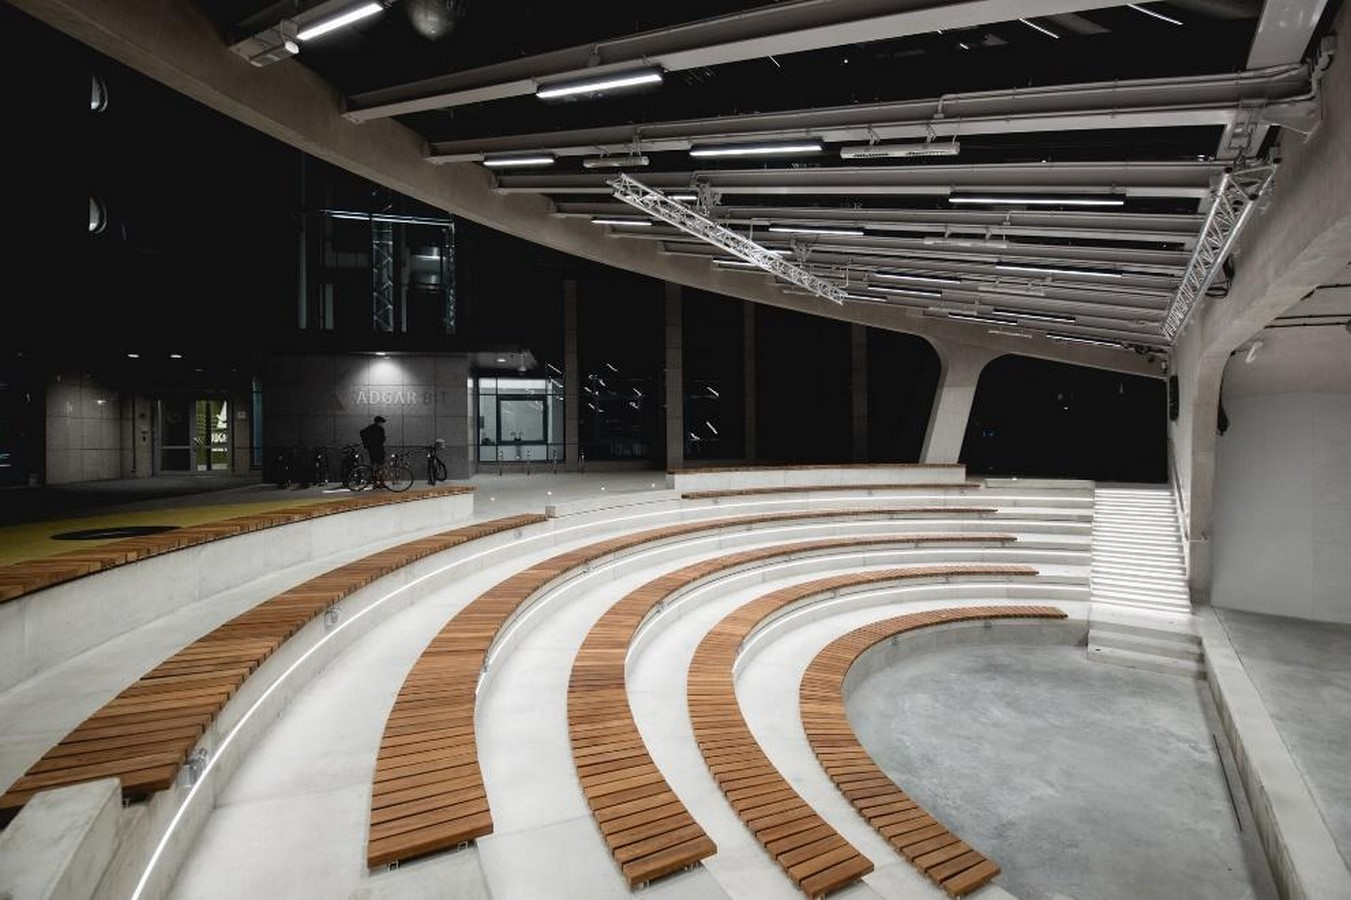 A concrete amphitheater as an 'open, democratic space' in Warsaw designed by Lina - Sheet15